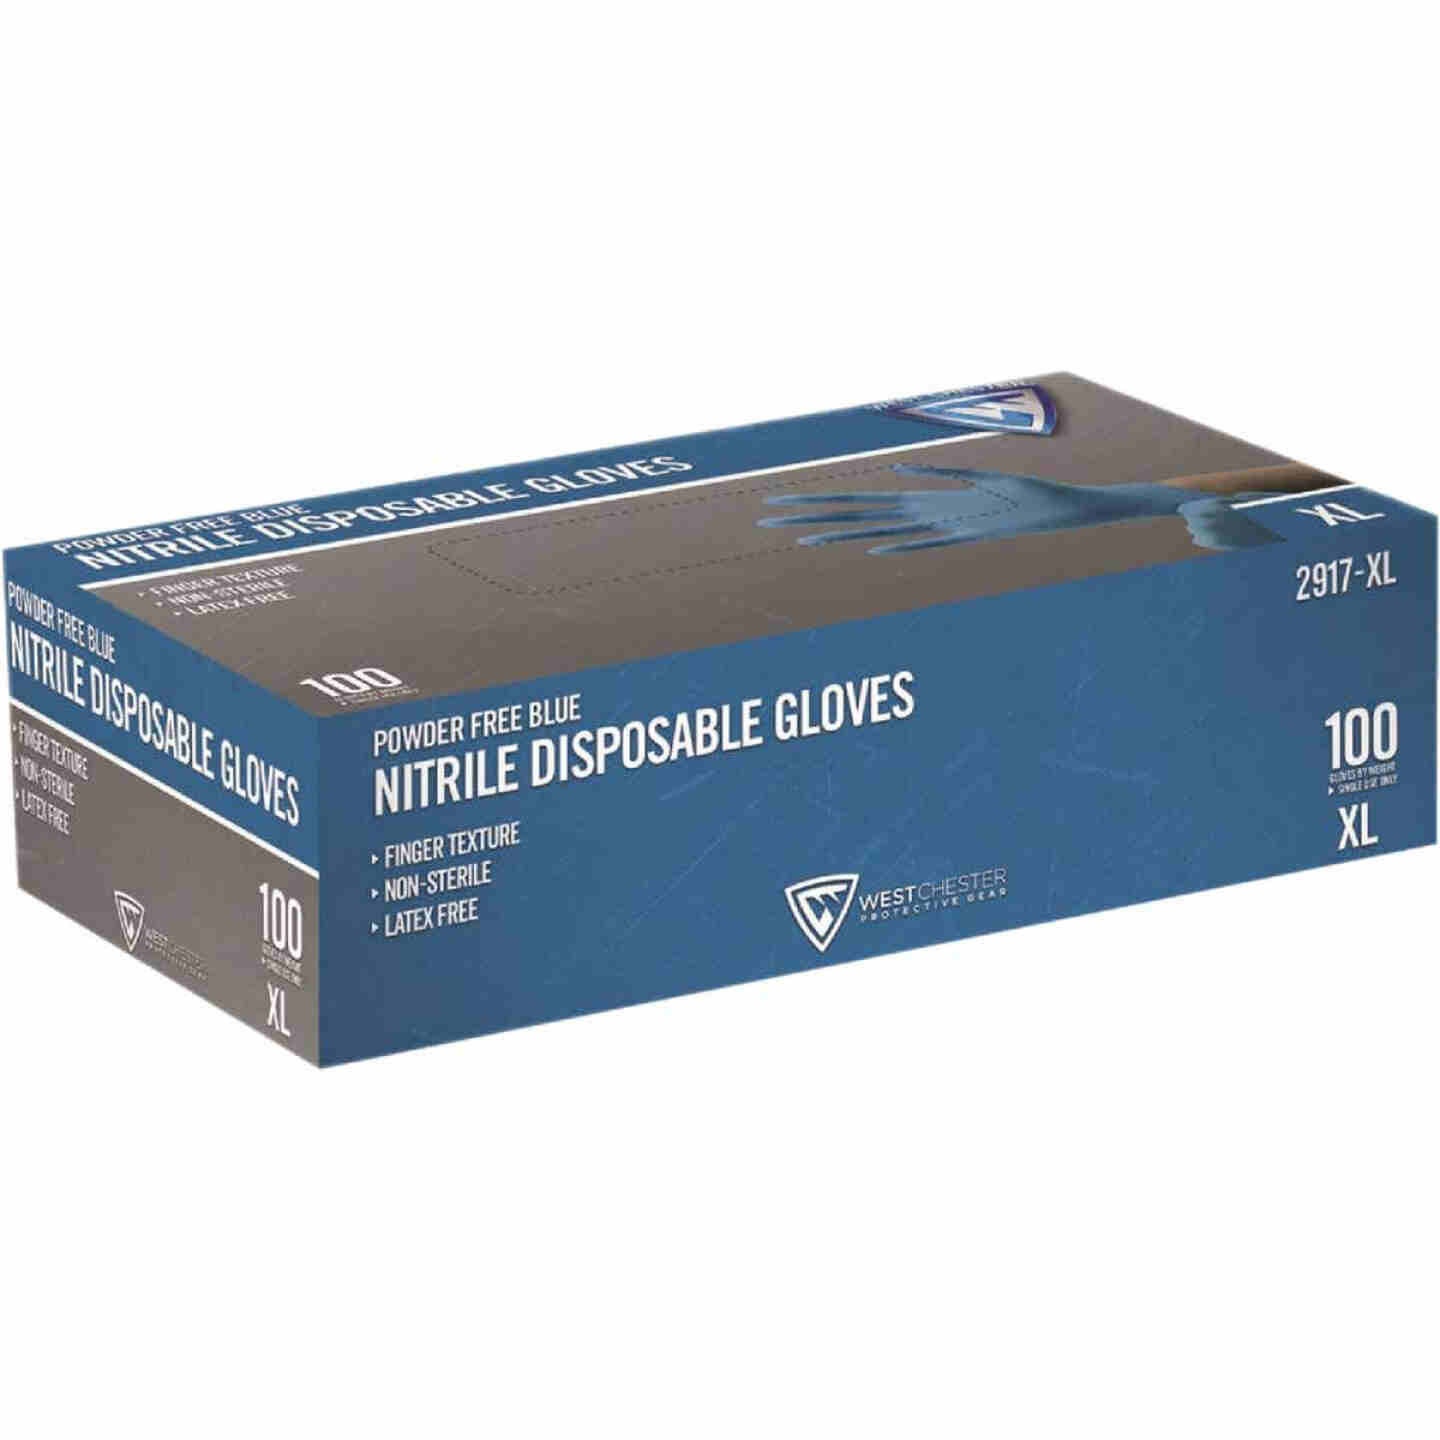 West Chester Protective Gear XL Nitrile Industrial Grade Disposable Glove (100-Pack) Image 1